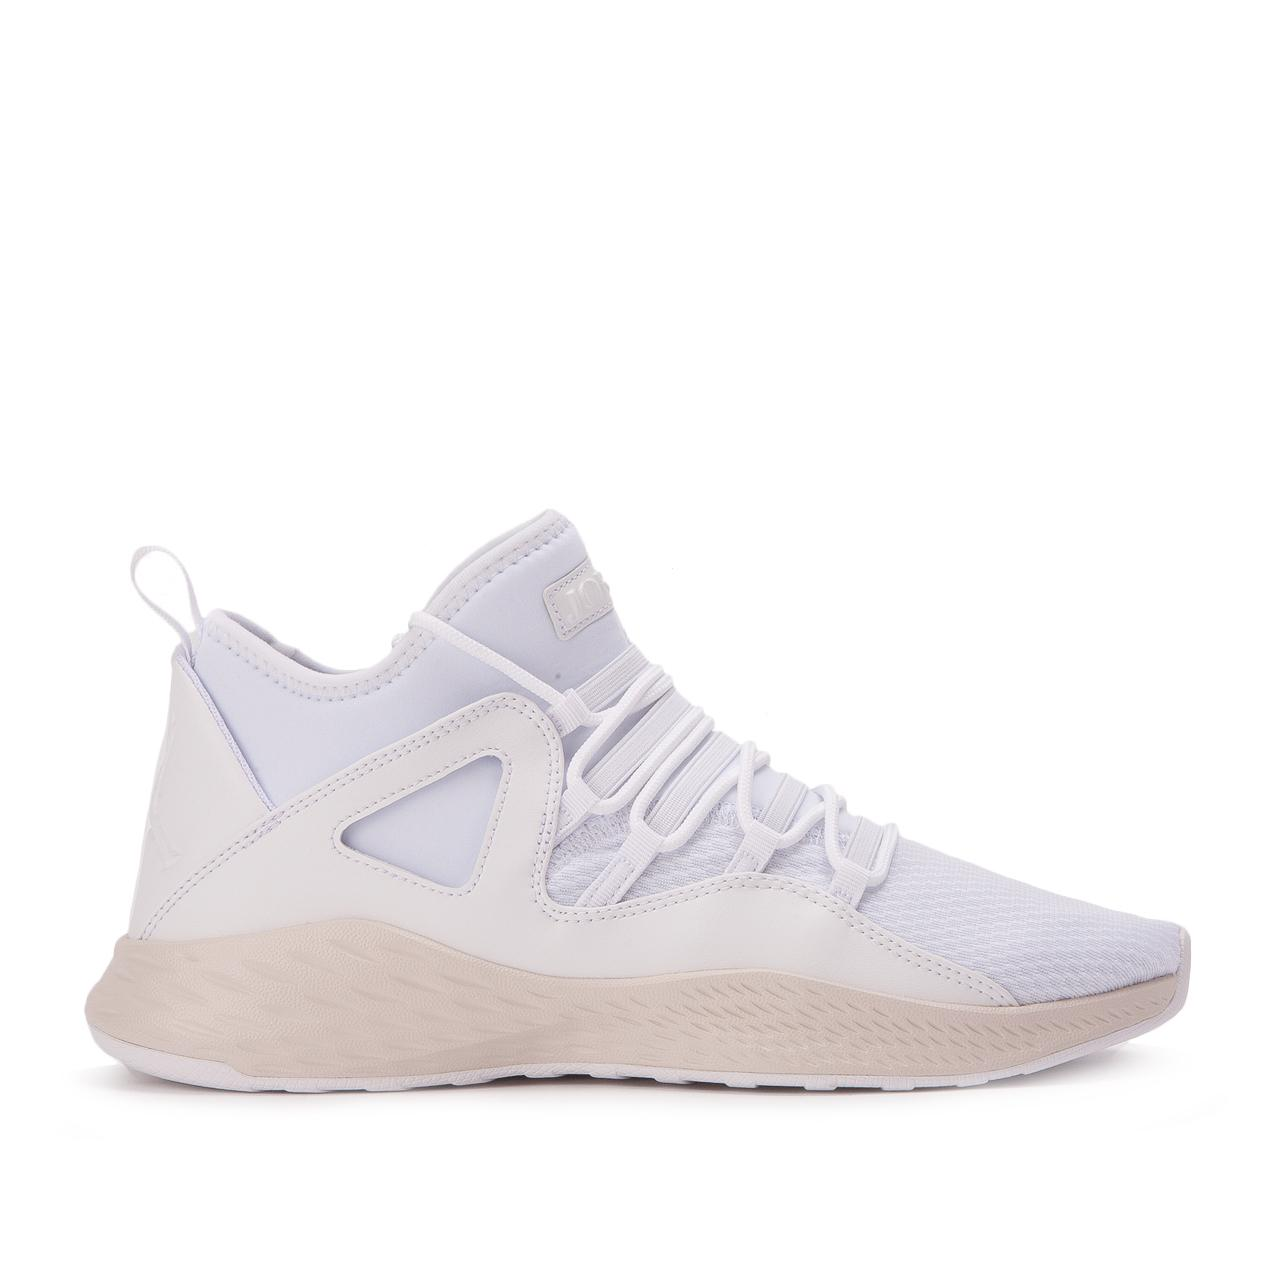 8ca1c532779f ... Nike Air Jordan Formula 23 for Men - Lyst. View fullscreen